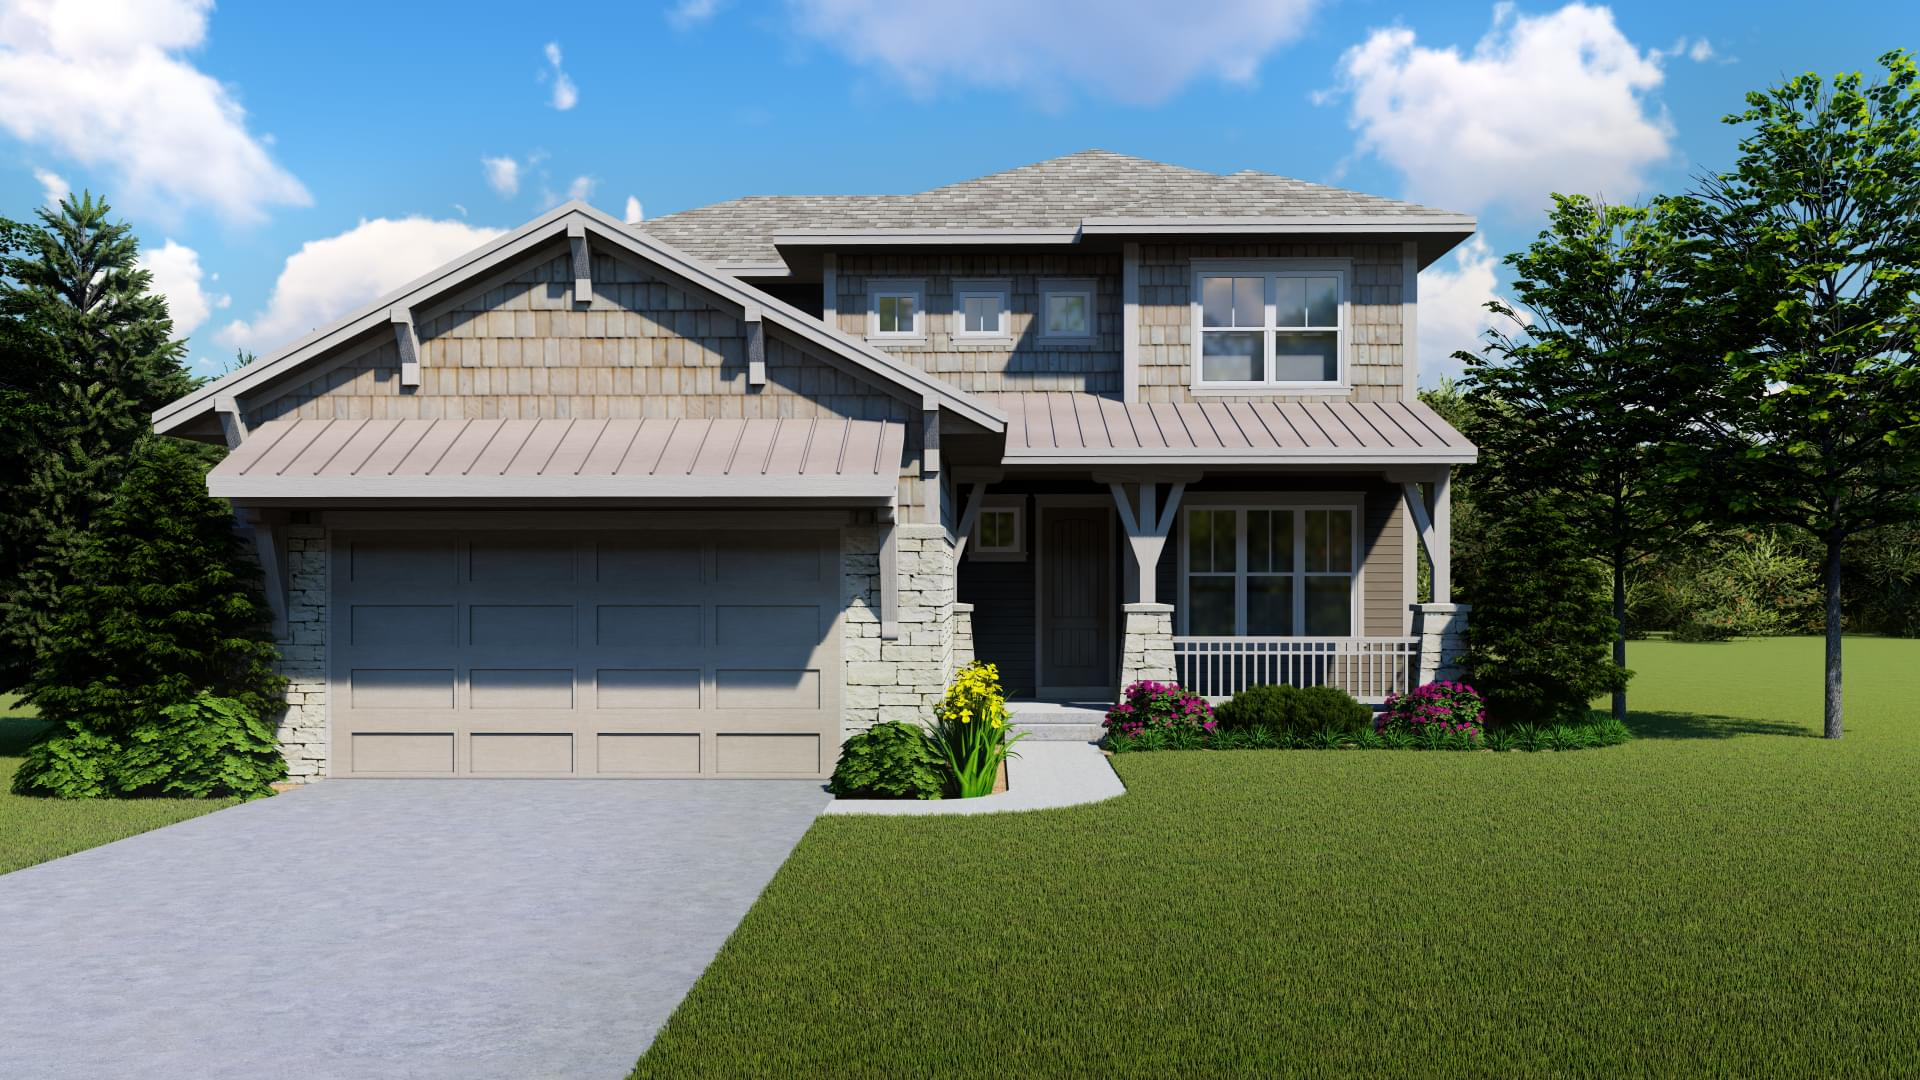 Spring Canyon Craftsman 1. New Home in Windsor, CO